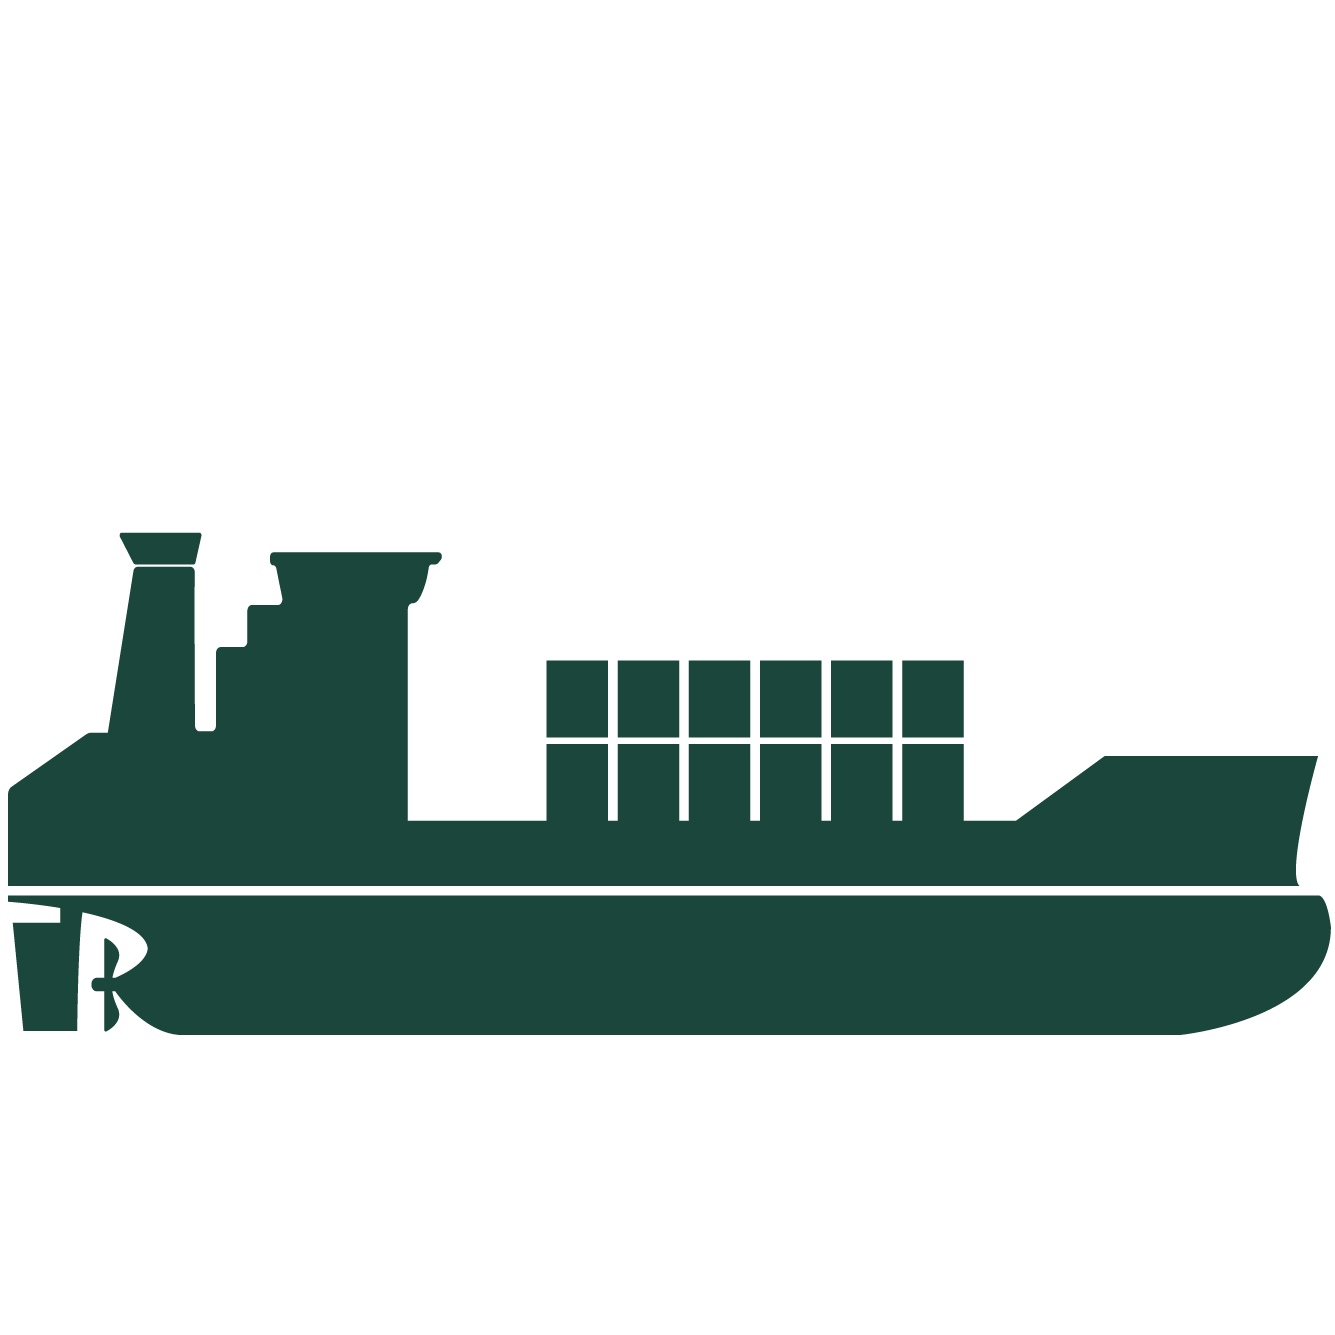 Sea Freight Icon